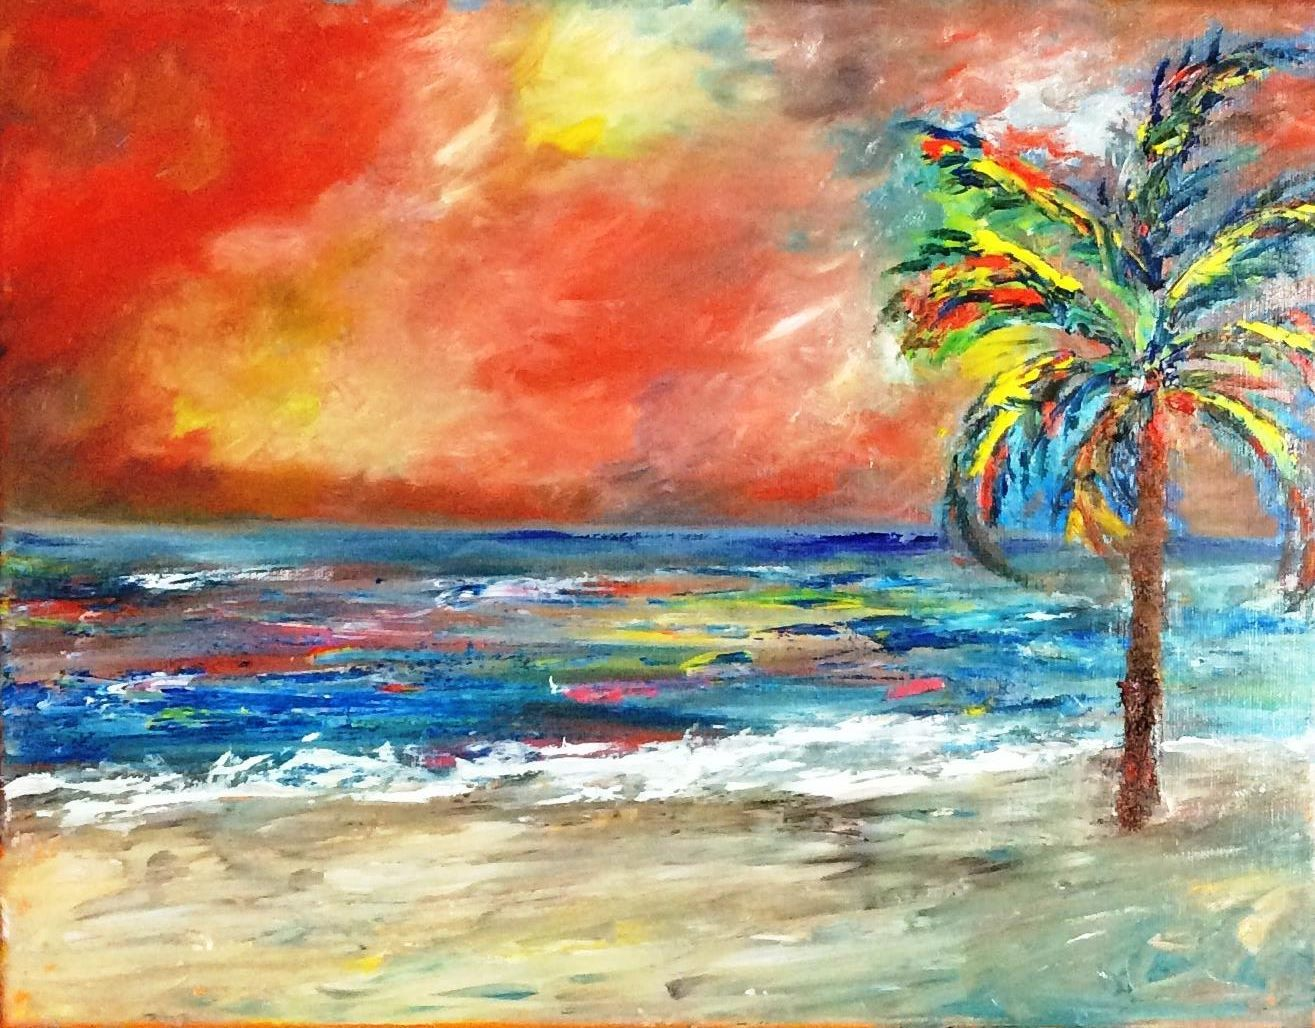 Palm Tree Beach - Art by Martha Stevenson, click on link to see her work.